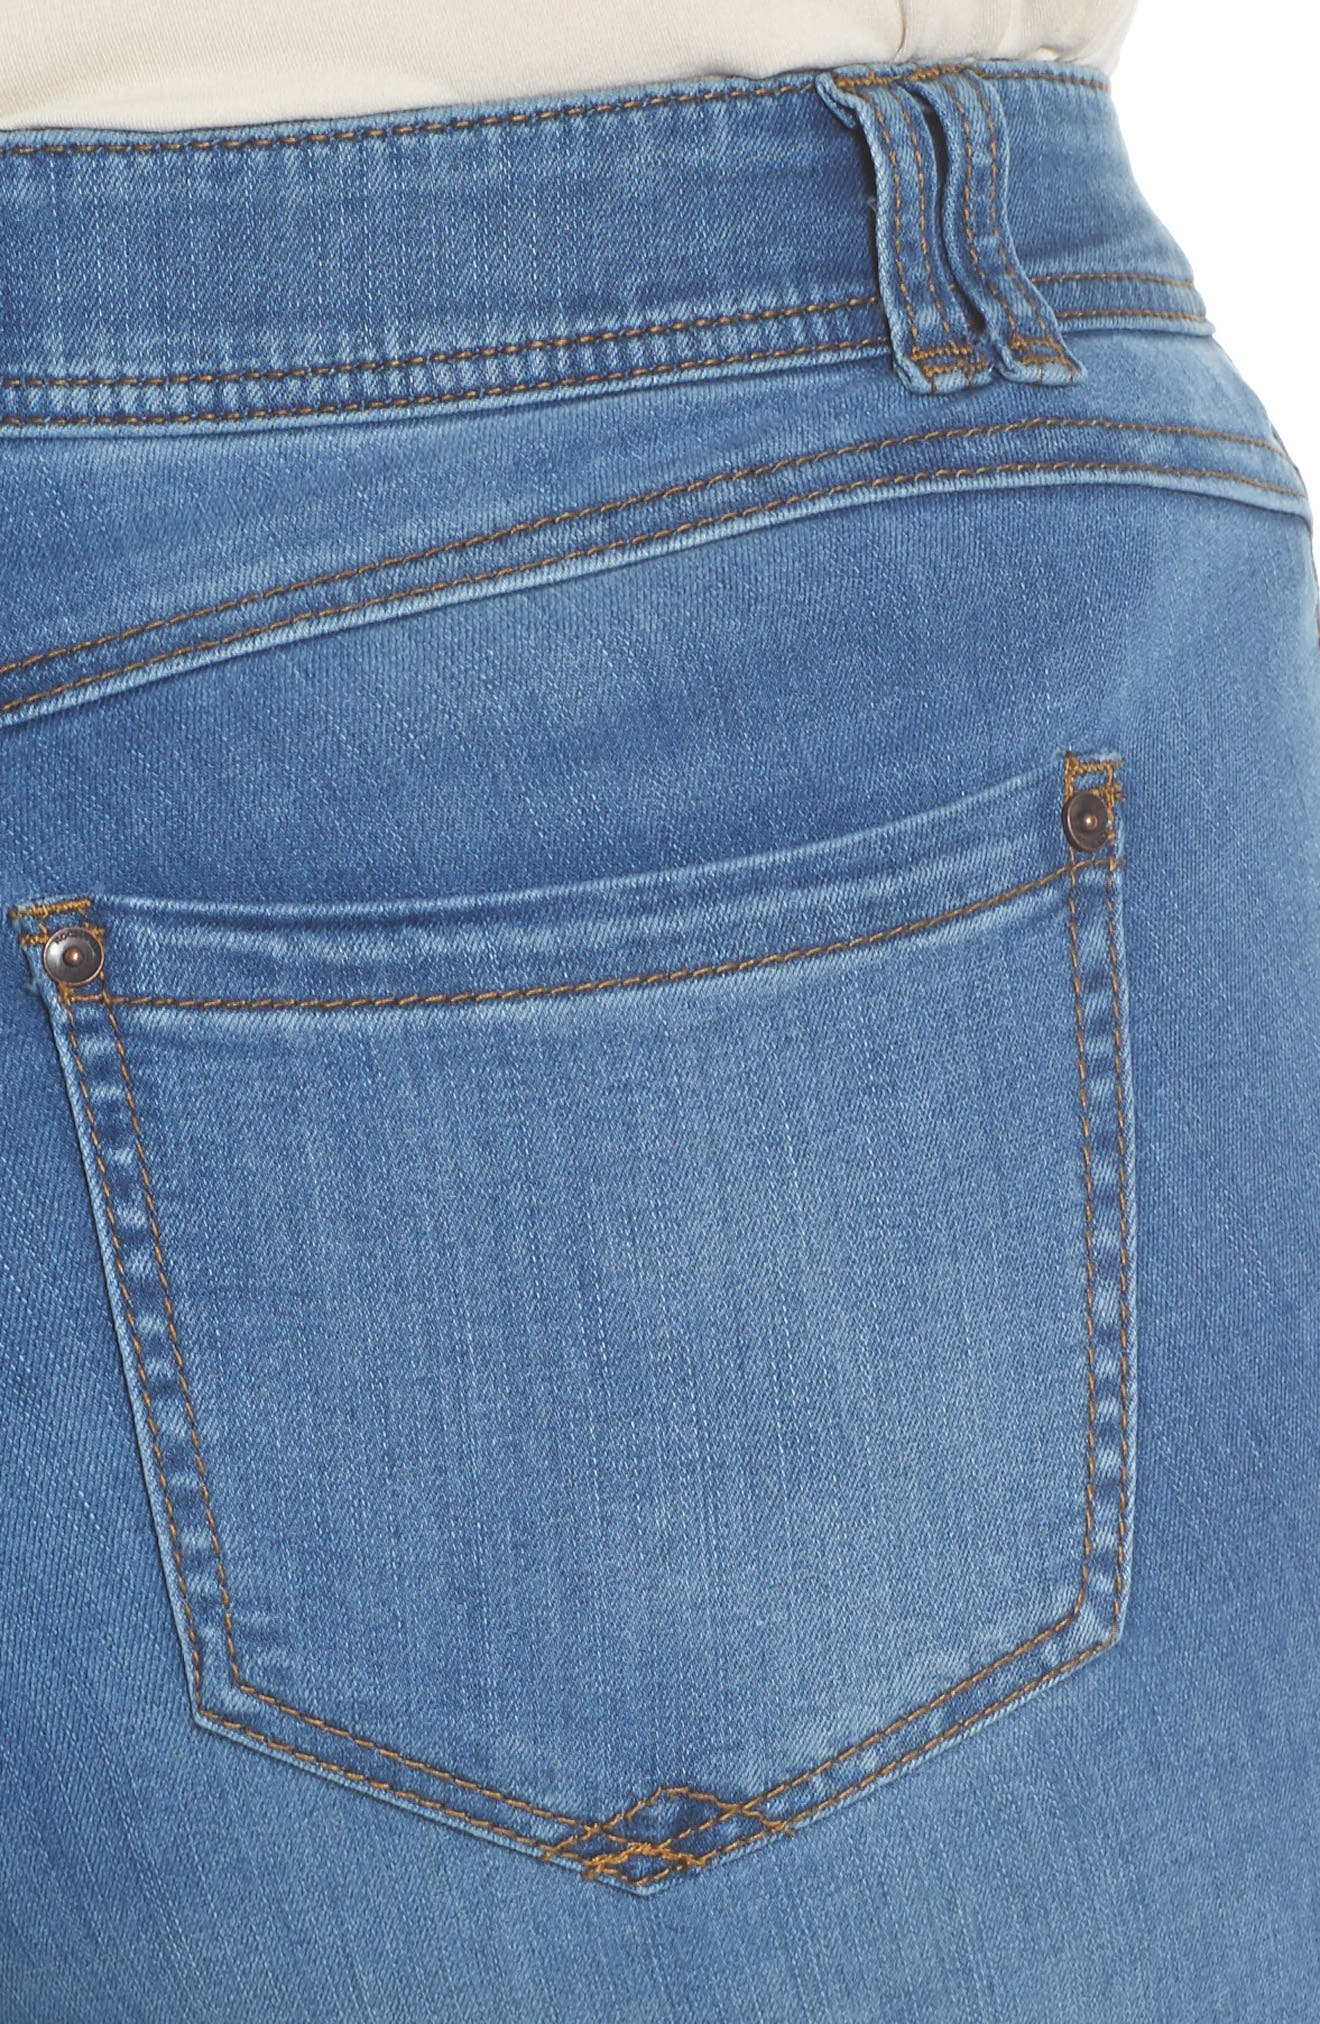 Ab-solution Luxe Touch Bootcut Jeans,                             Alternate thumbnail 4, color,                             Light Blue